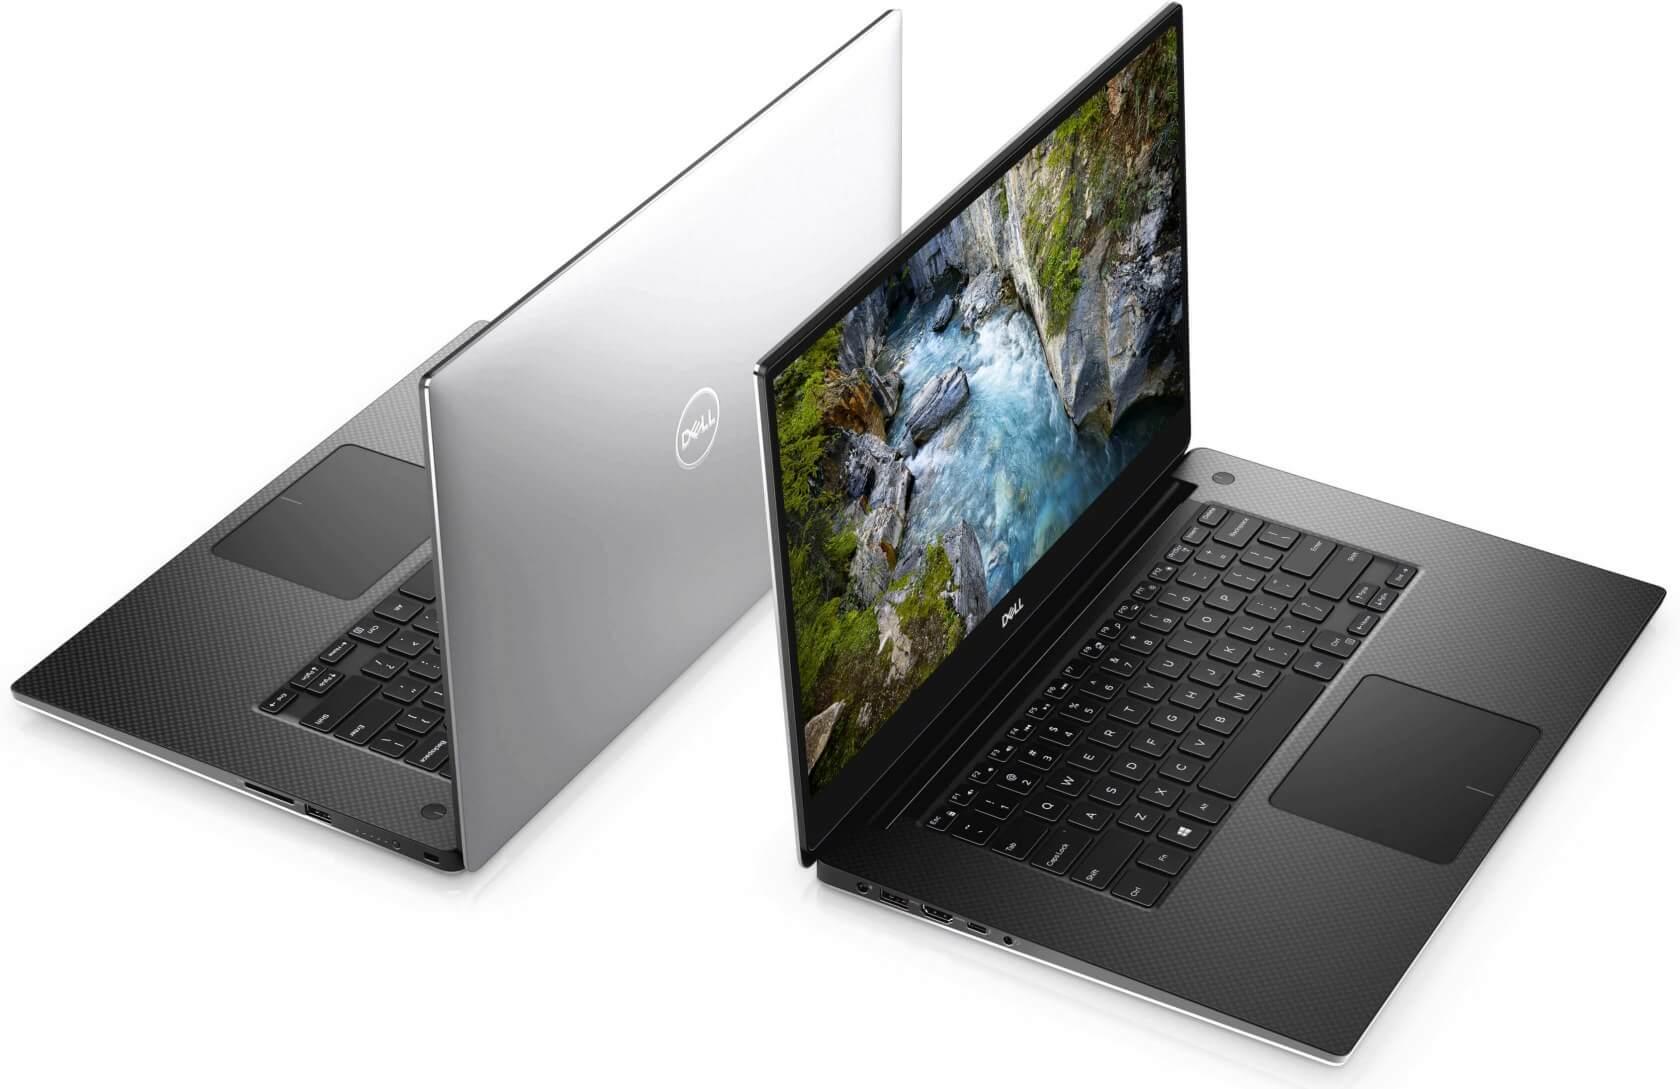 Laptop News and Articles - TechSpot